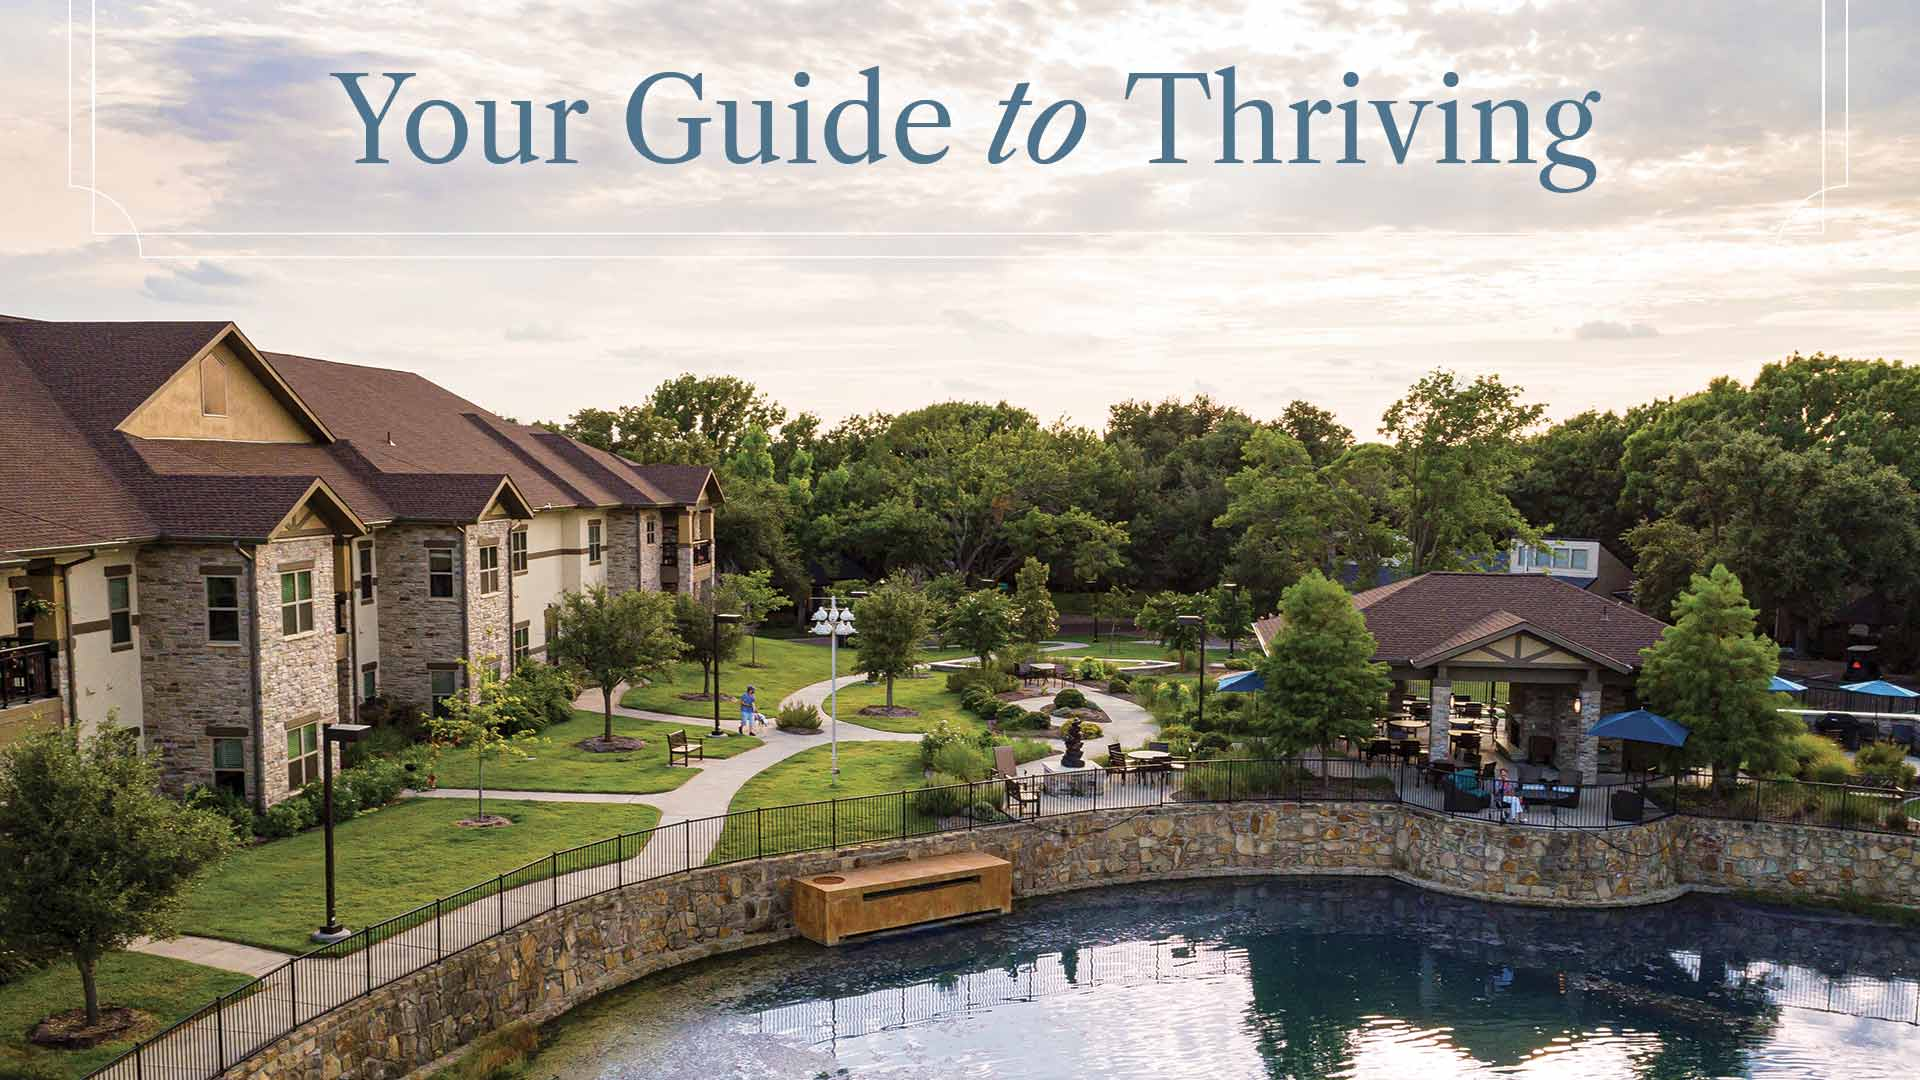 Your Guide to Thriving